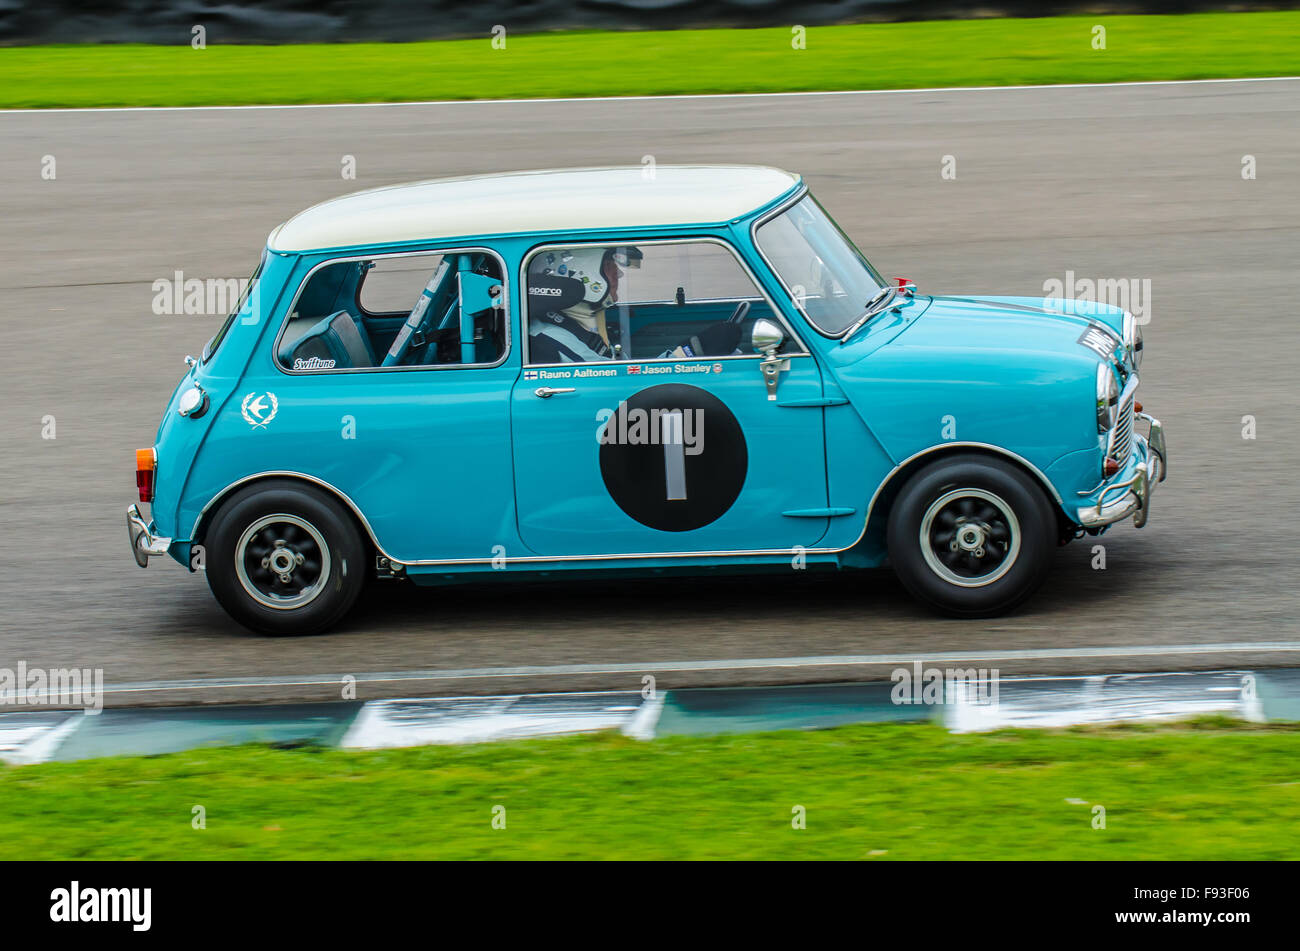 The Mini is a small economy car made by the British Motor Corporation (BMC) and its successors from 1959 until 2000. - Stock Image